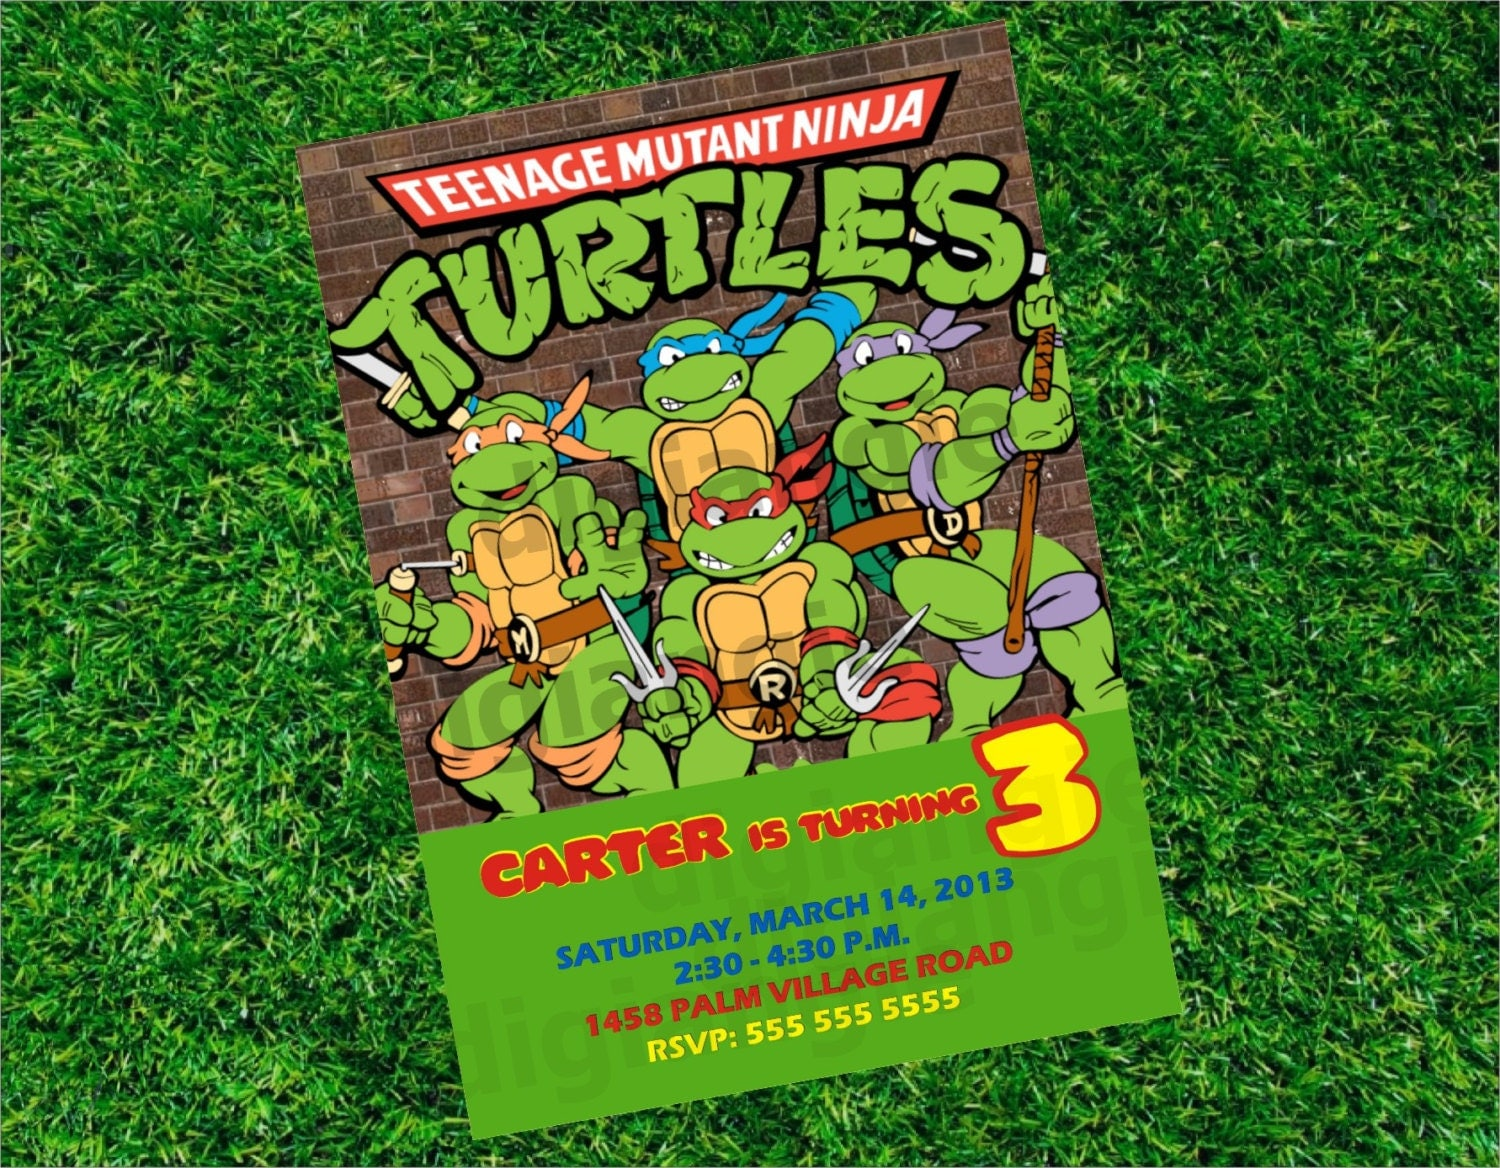 Teenage mutant ninja turtles invitations template - photo#7